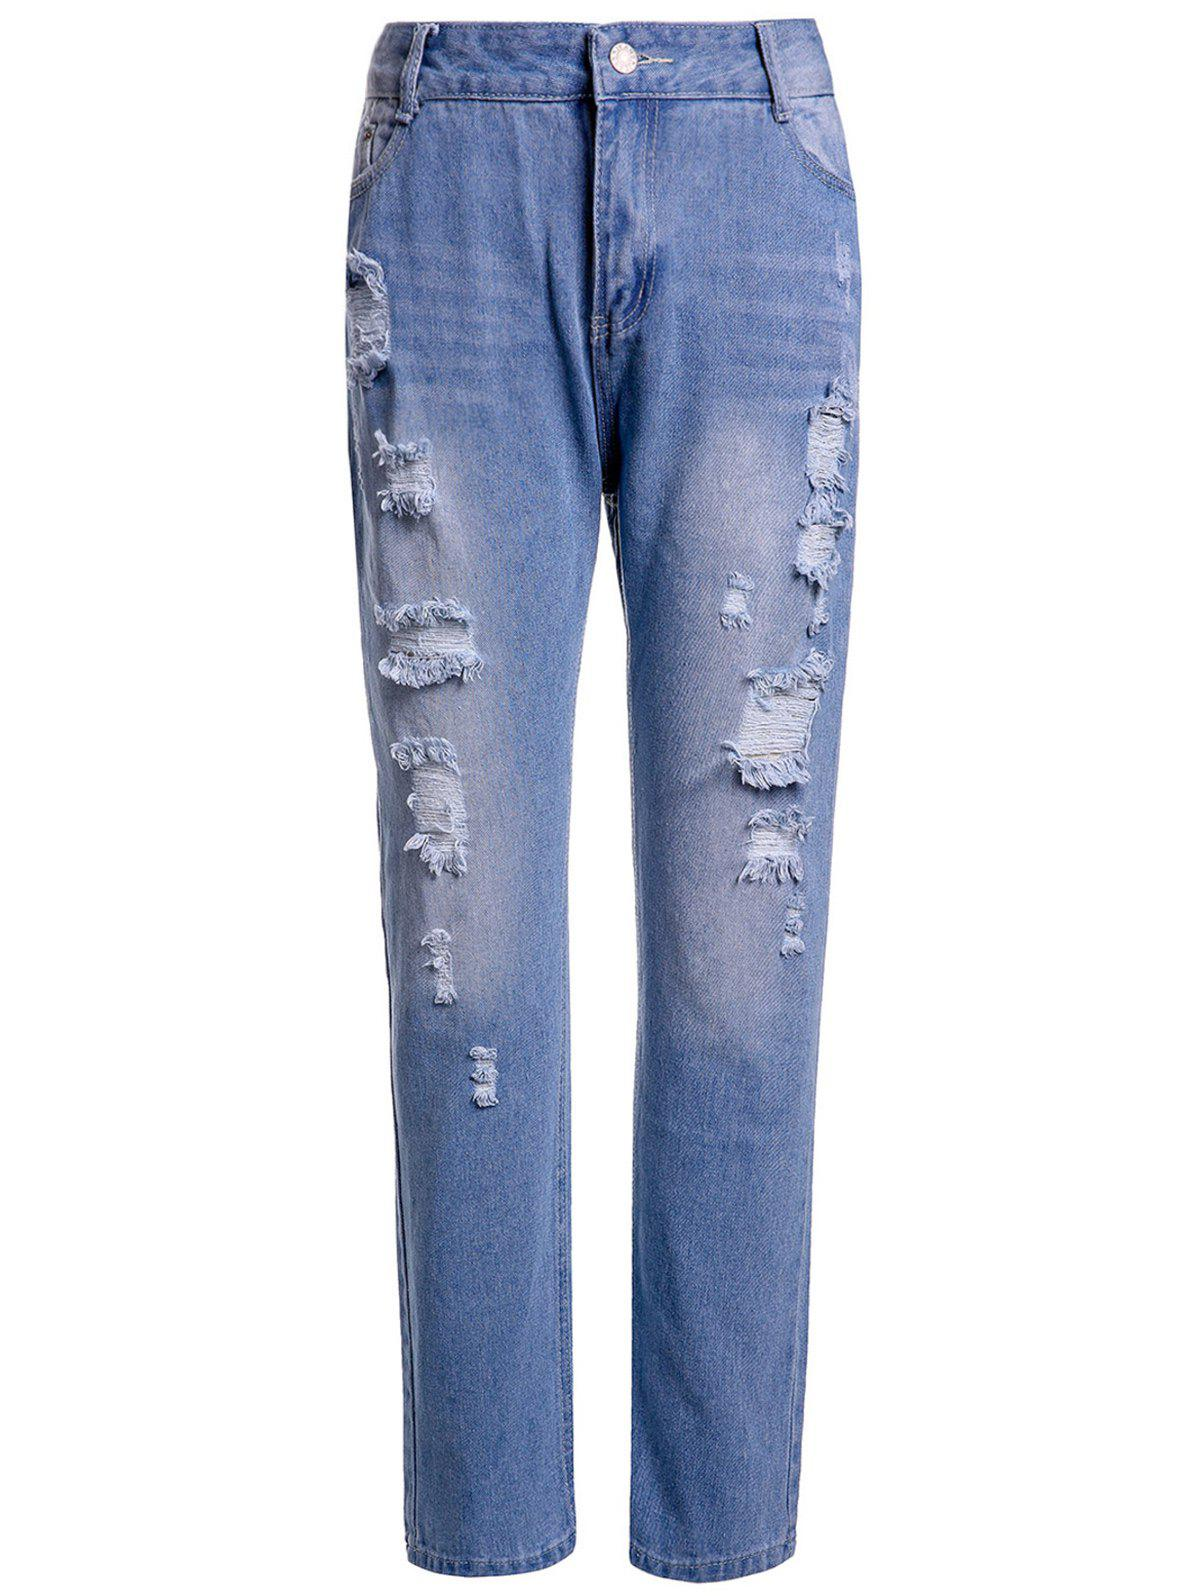 Casual High-Waisted Frayed Ripped Women's Ninth Jeans - BLUE M